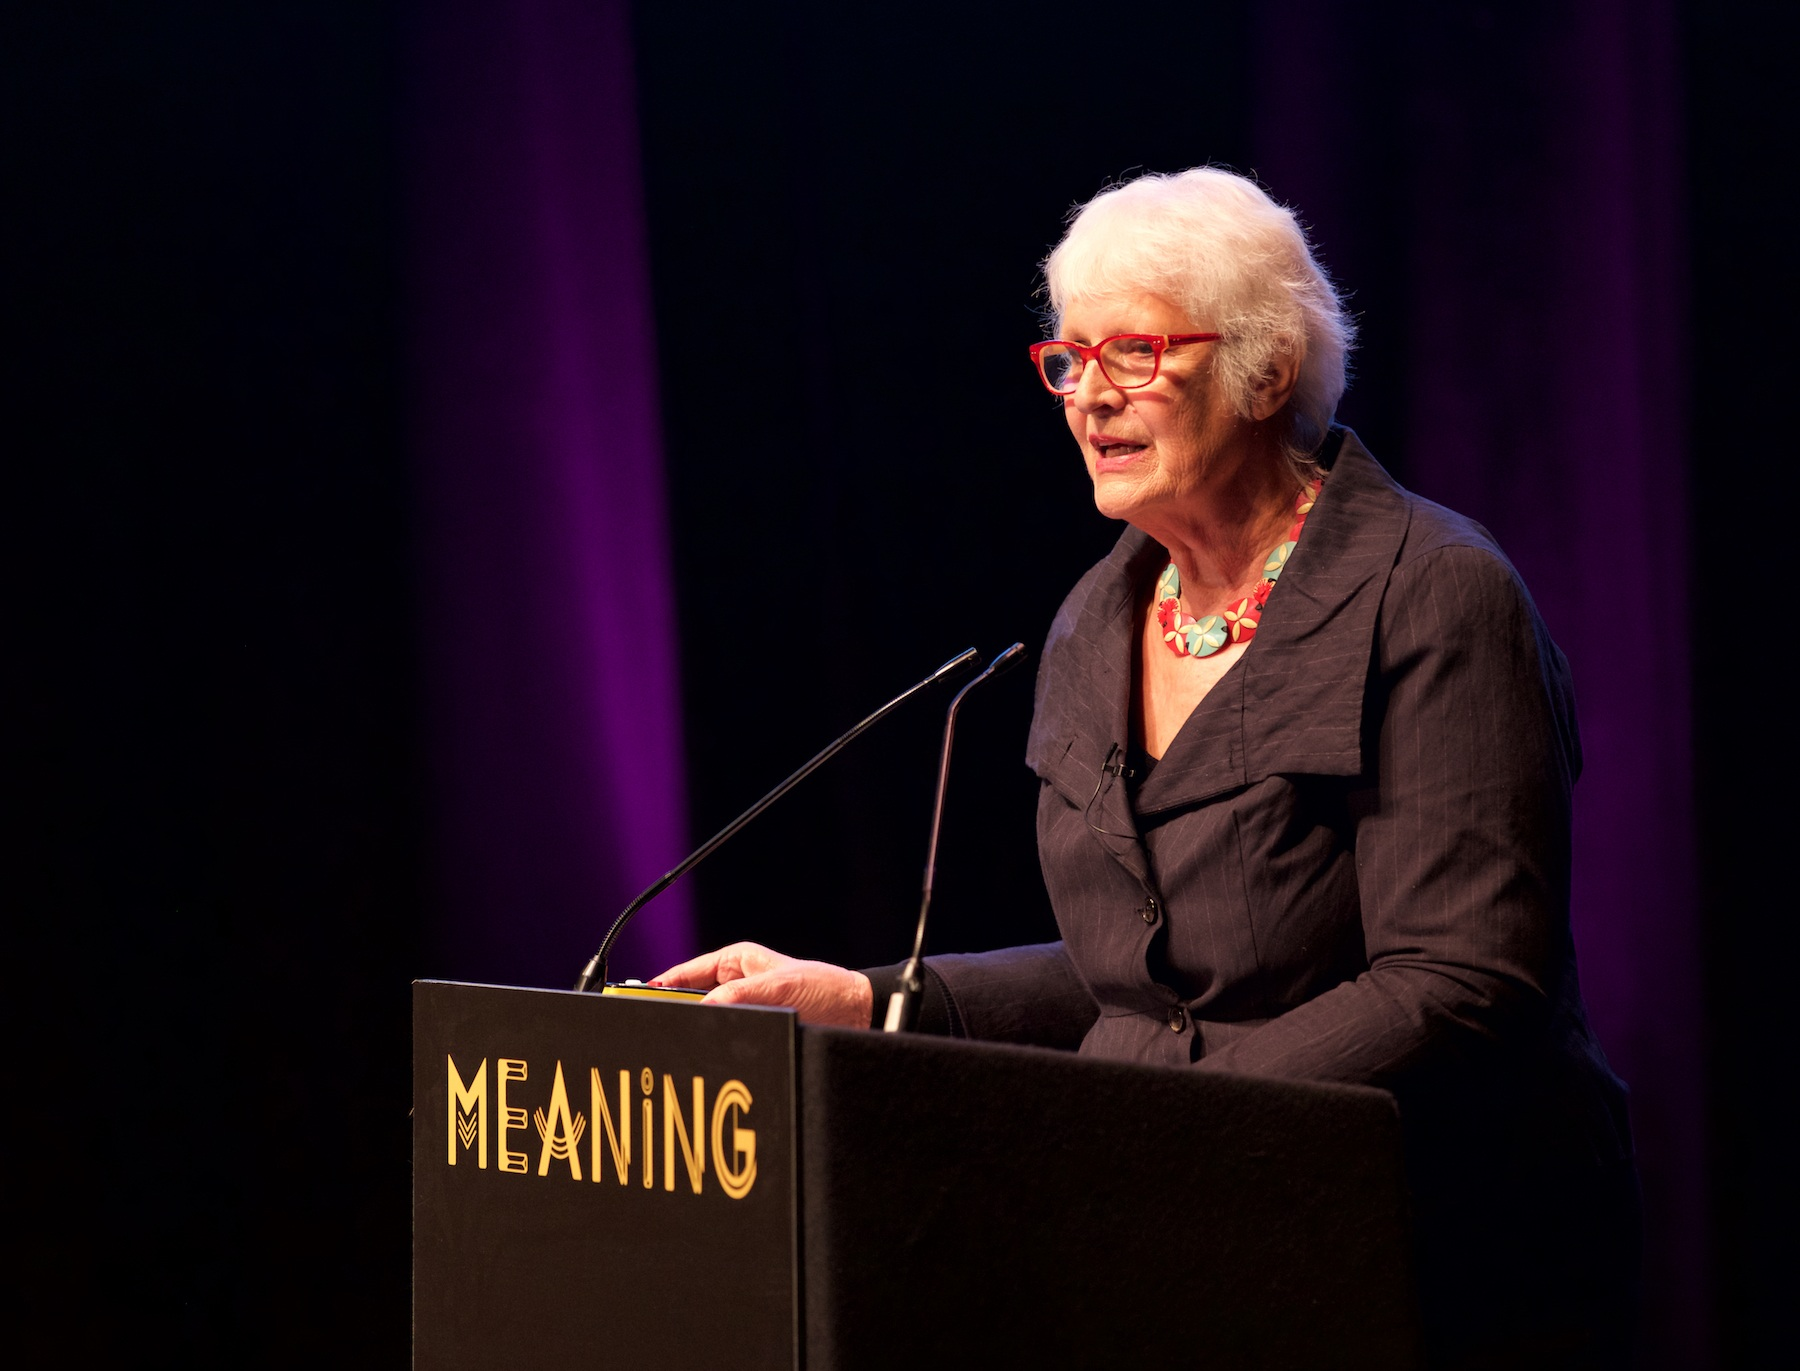 Lani Morris at Meaning 2018